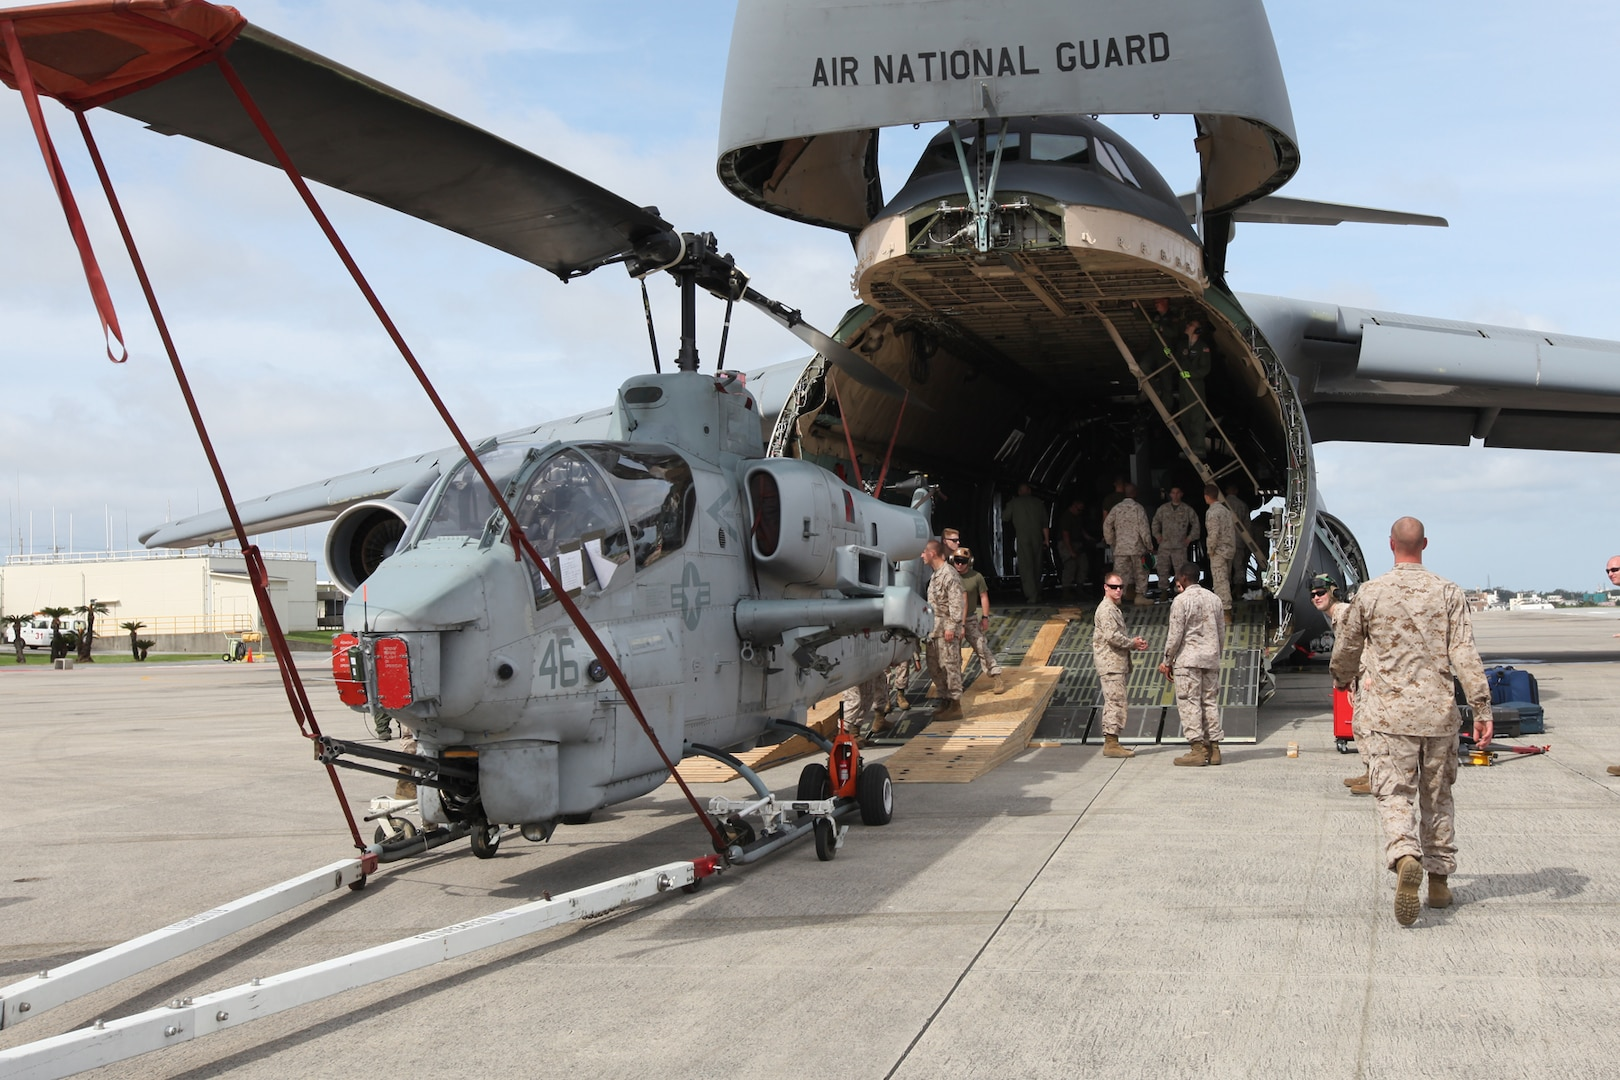 Marines from Marine Heavy Helicopter Squadron 772 (HMH-772) off load an AH-1U Cobra from a C-5 Galaxy on Marine Corps Air Station Futenma, Okinawa, Japan, June 7, 2013. The C-5 was carrying aircraft and personnel from HMH-772. HMH-772 is participating in the Unit Deployment Program. (U.S. Marine Corps photo by Lance Cpl. Jeraco Jenkins/ Cleared For Public Release).